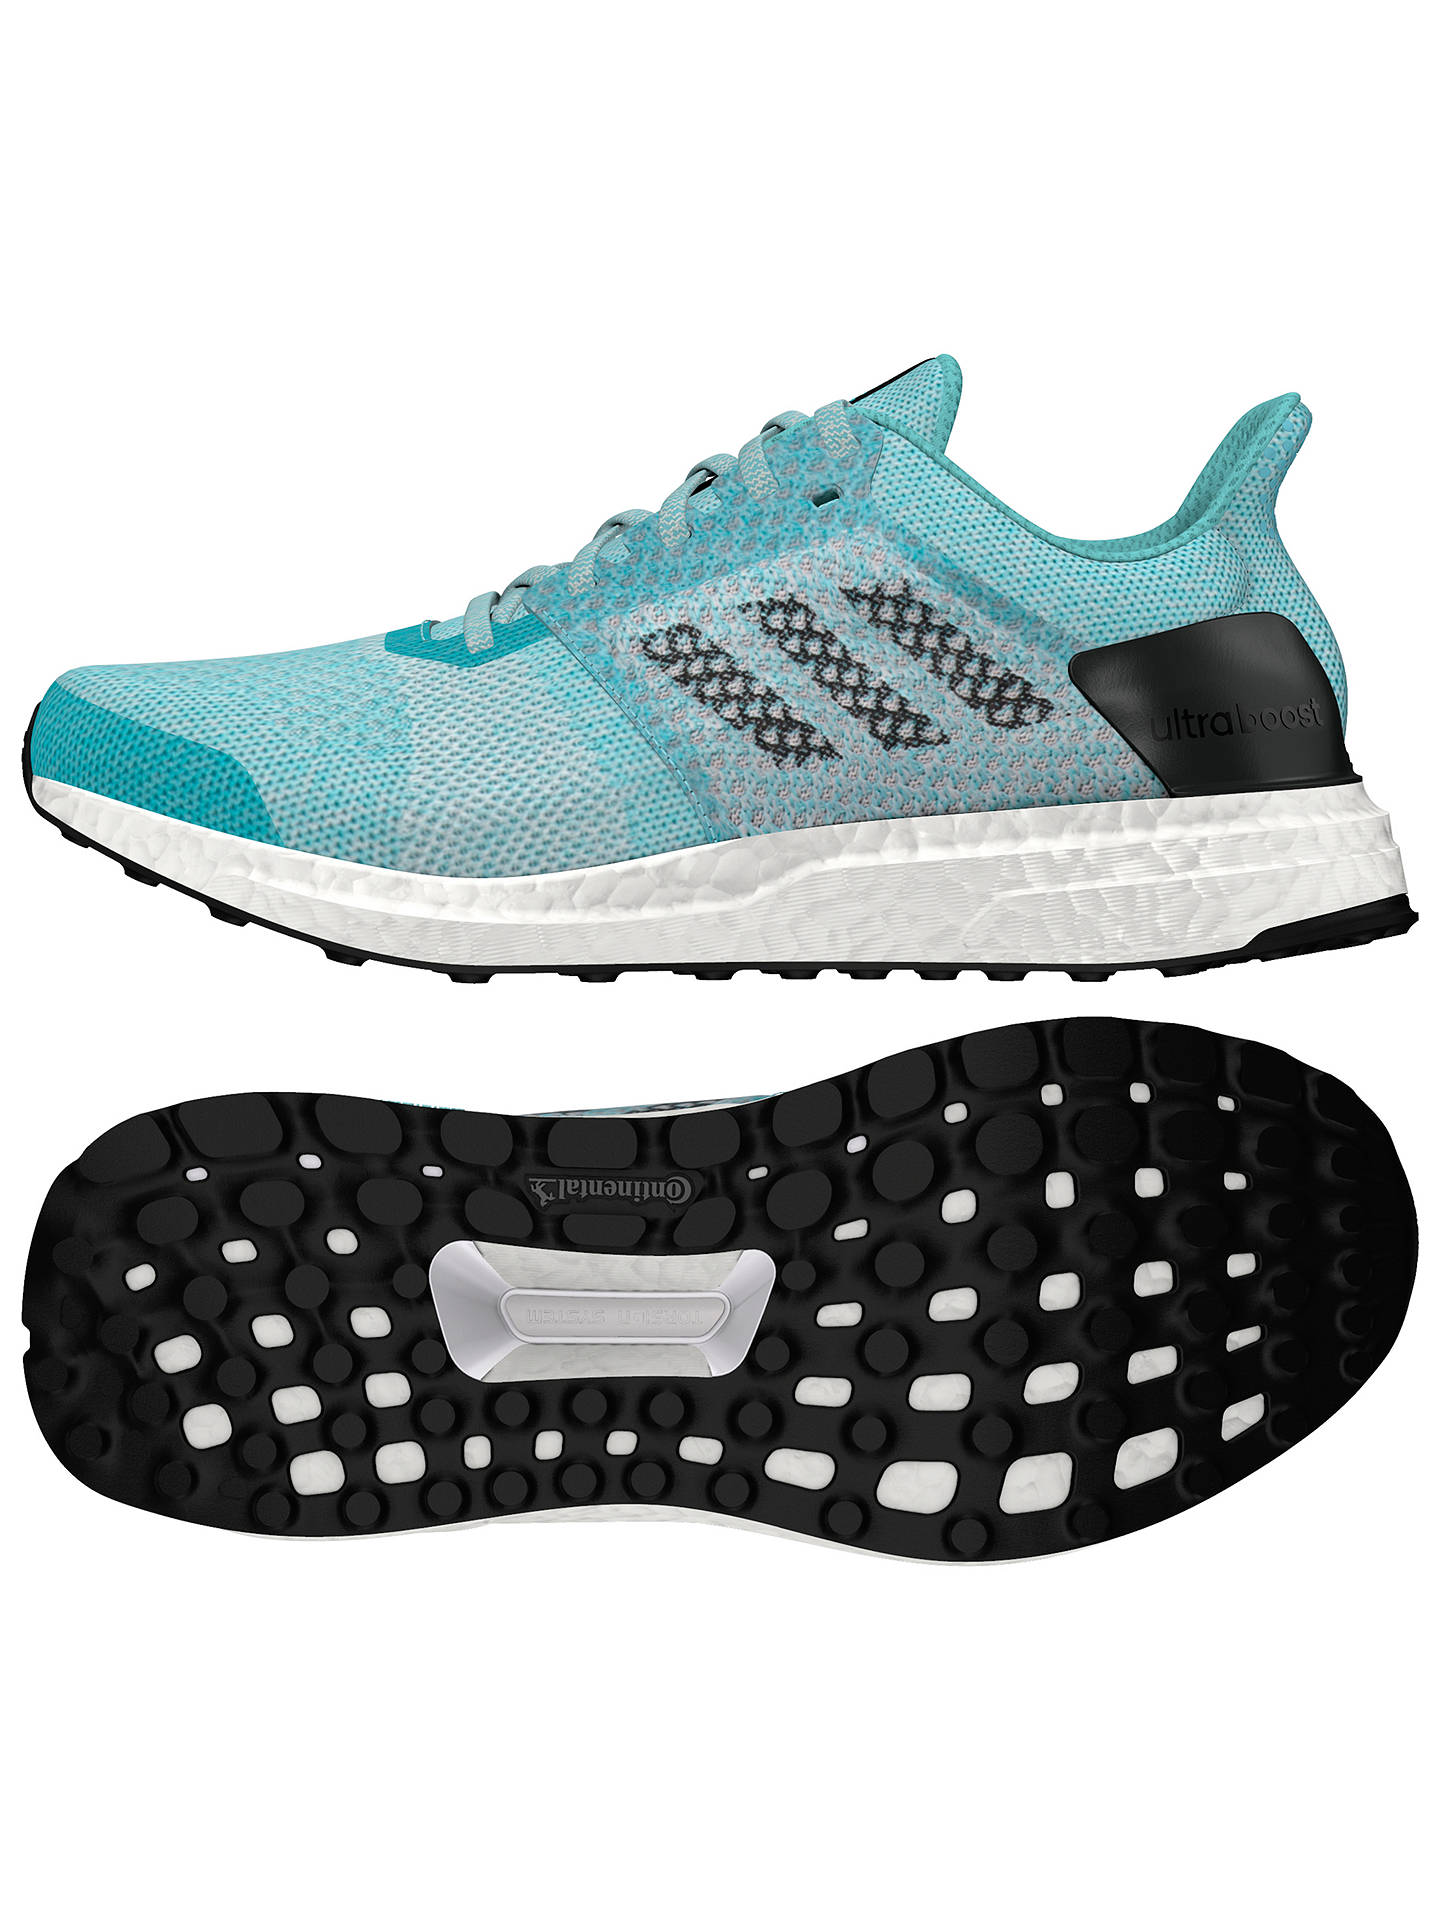 eaea6d31ad333 ... Buy adidas UltraBOOST ST Women s Running Shoes